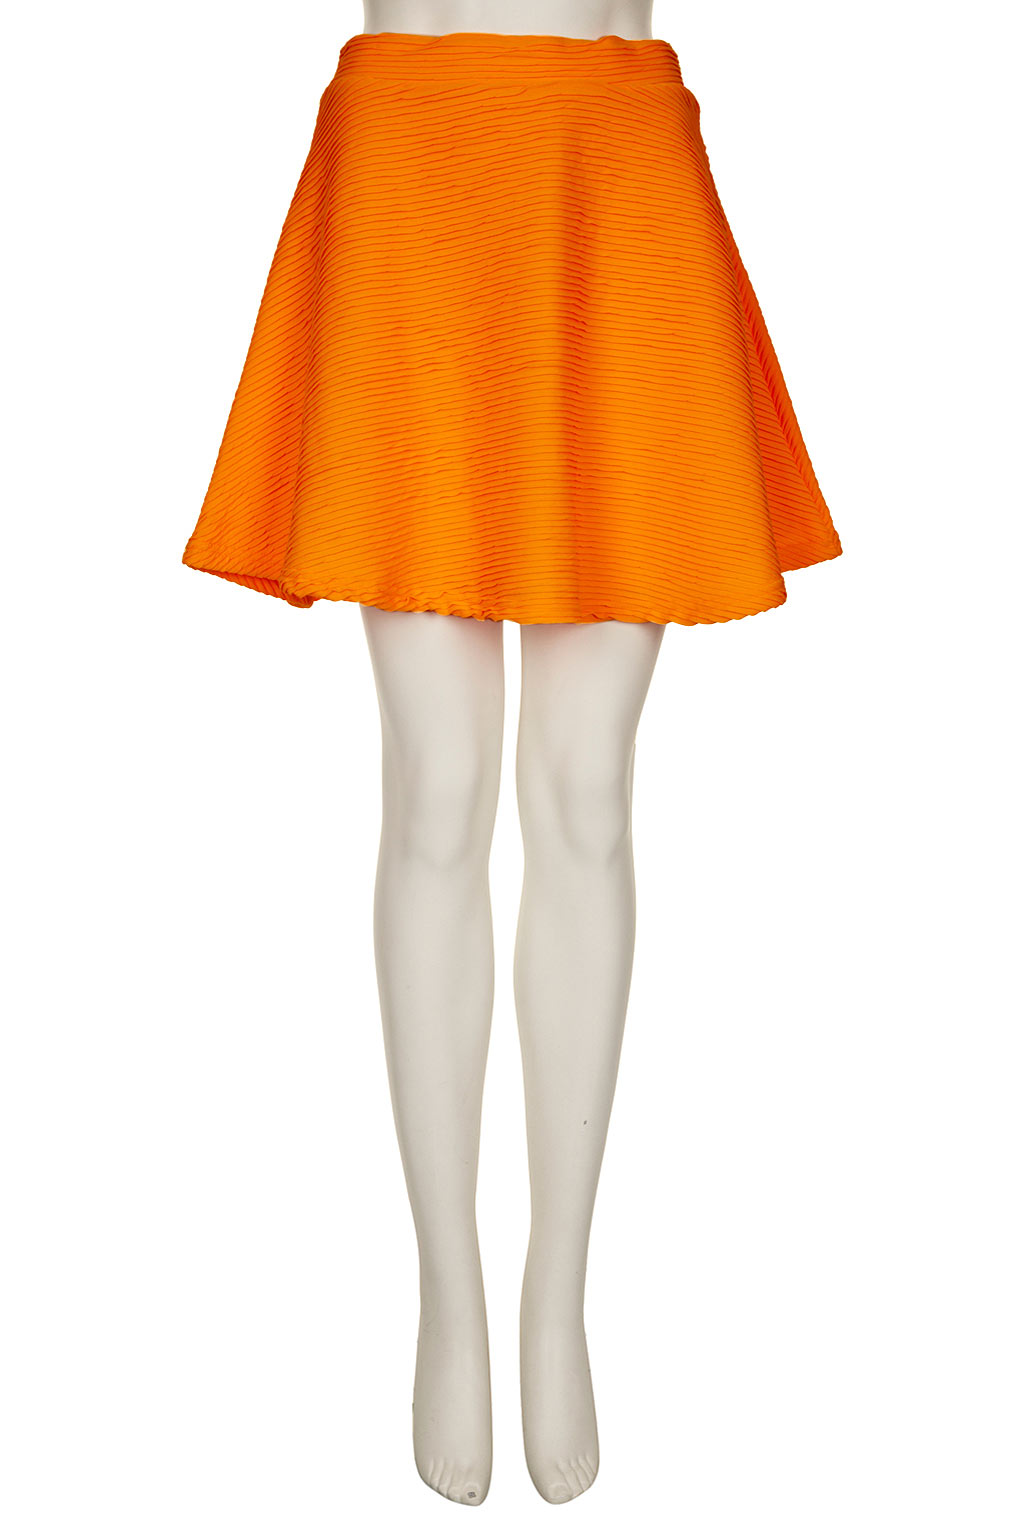 gonna arancio TOP SHOP  29 euro http://bit.ly/10WydUc